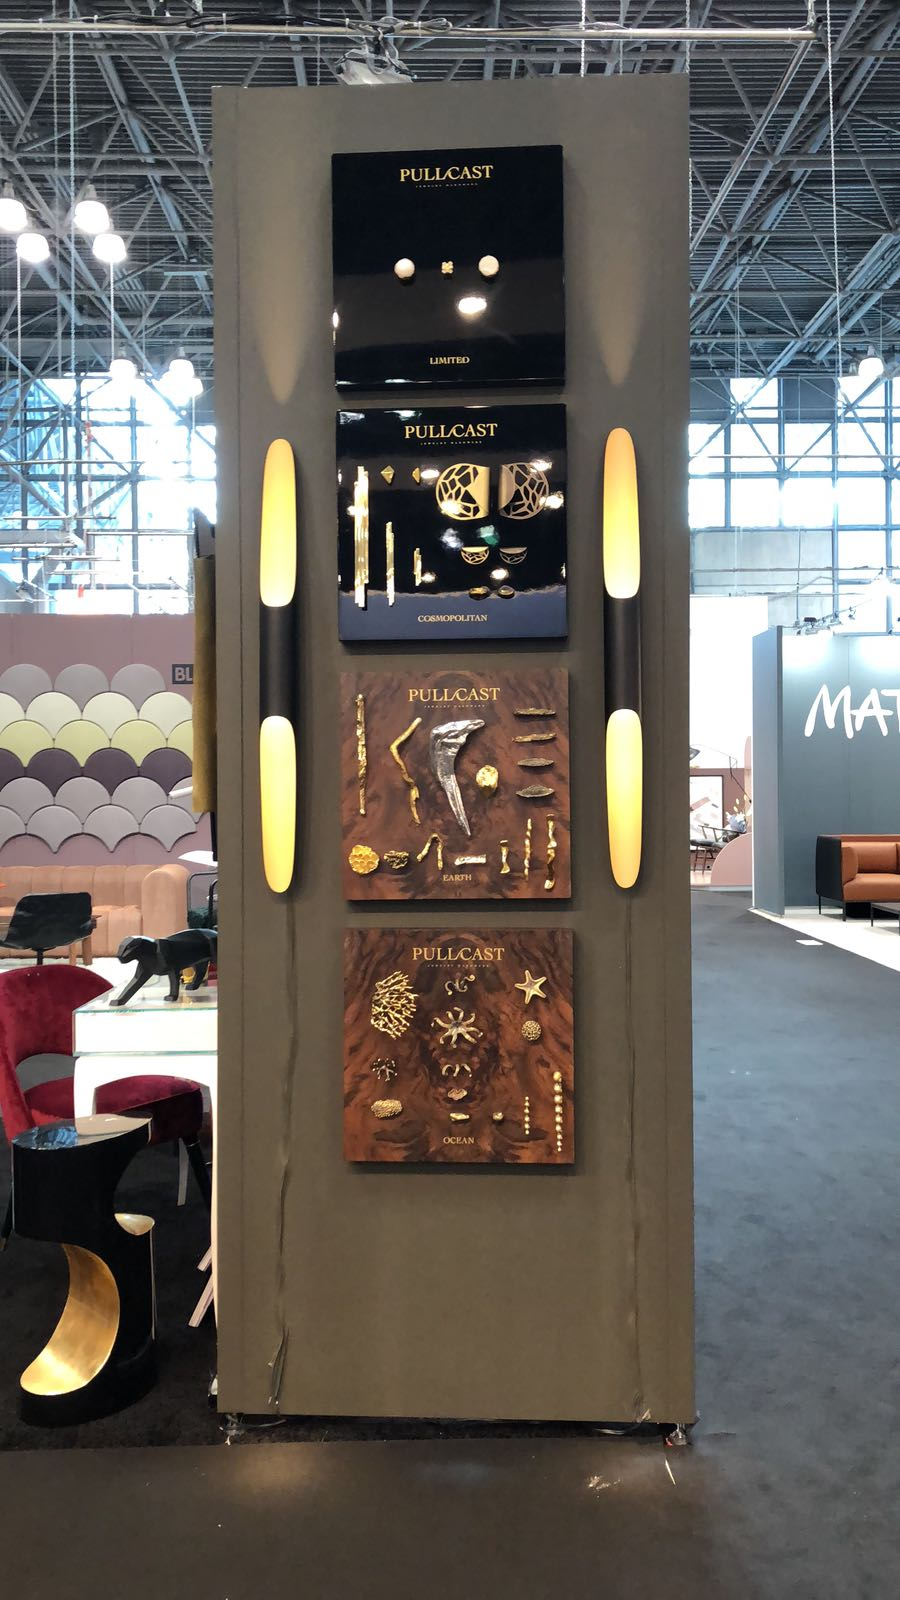 ICFF 2019 What To Expect From This Event In New York City 6 icff 2019 ICFF 2019: What To Expect From This Event In New York City! ICFF 2019 What To Expect From This Event In New York City 6